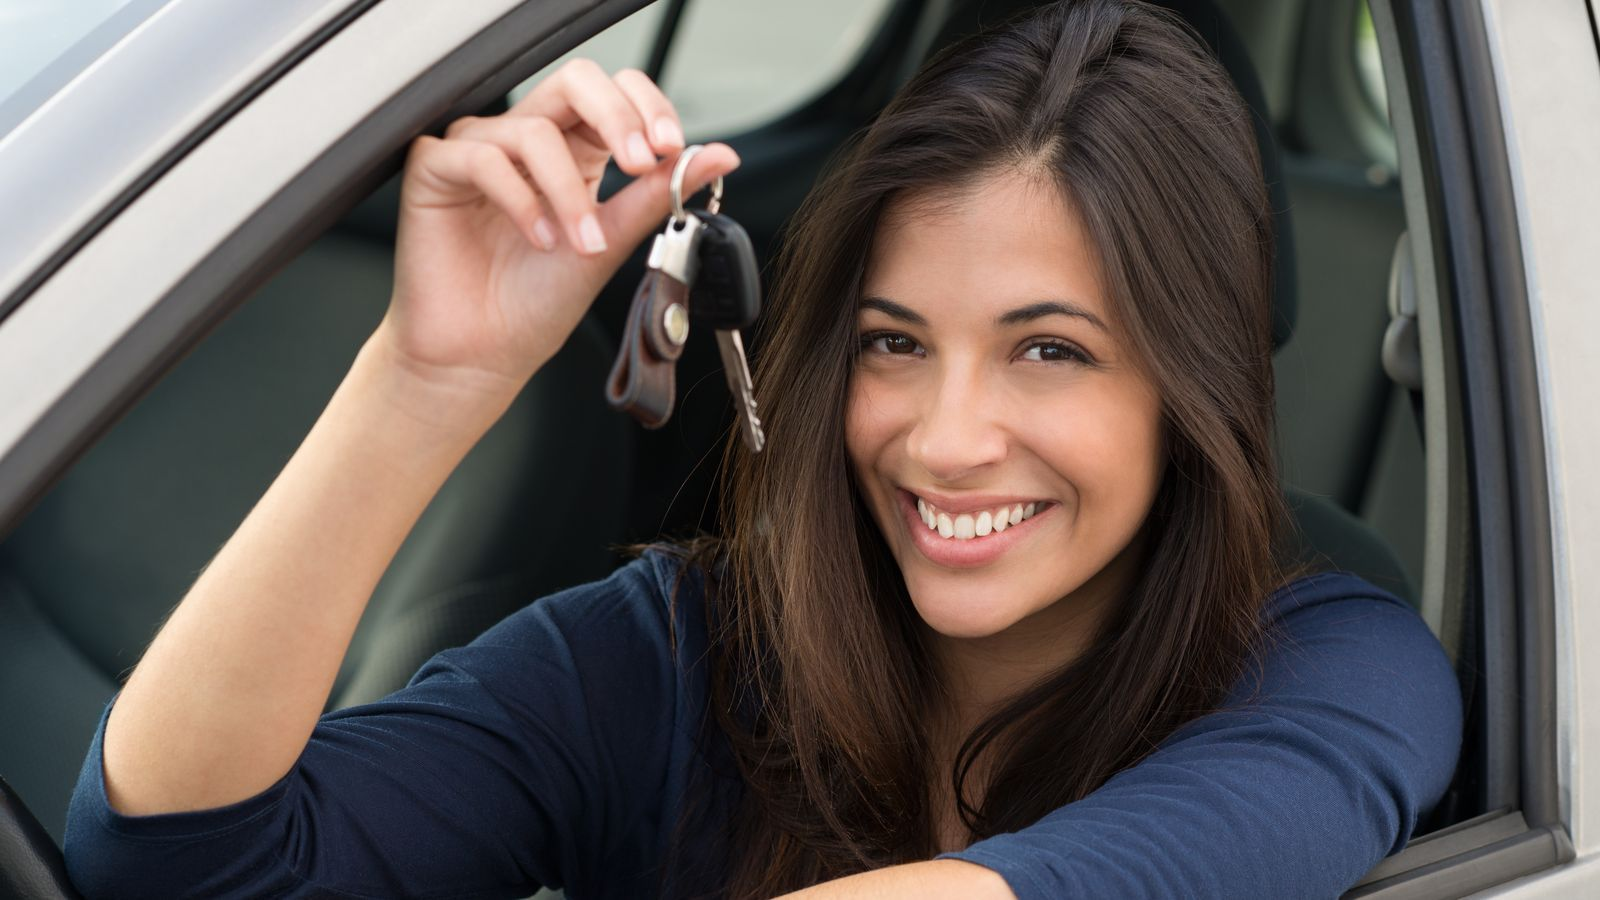 Heres the real cost of owning a new car and how to get